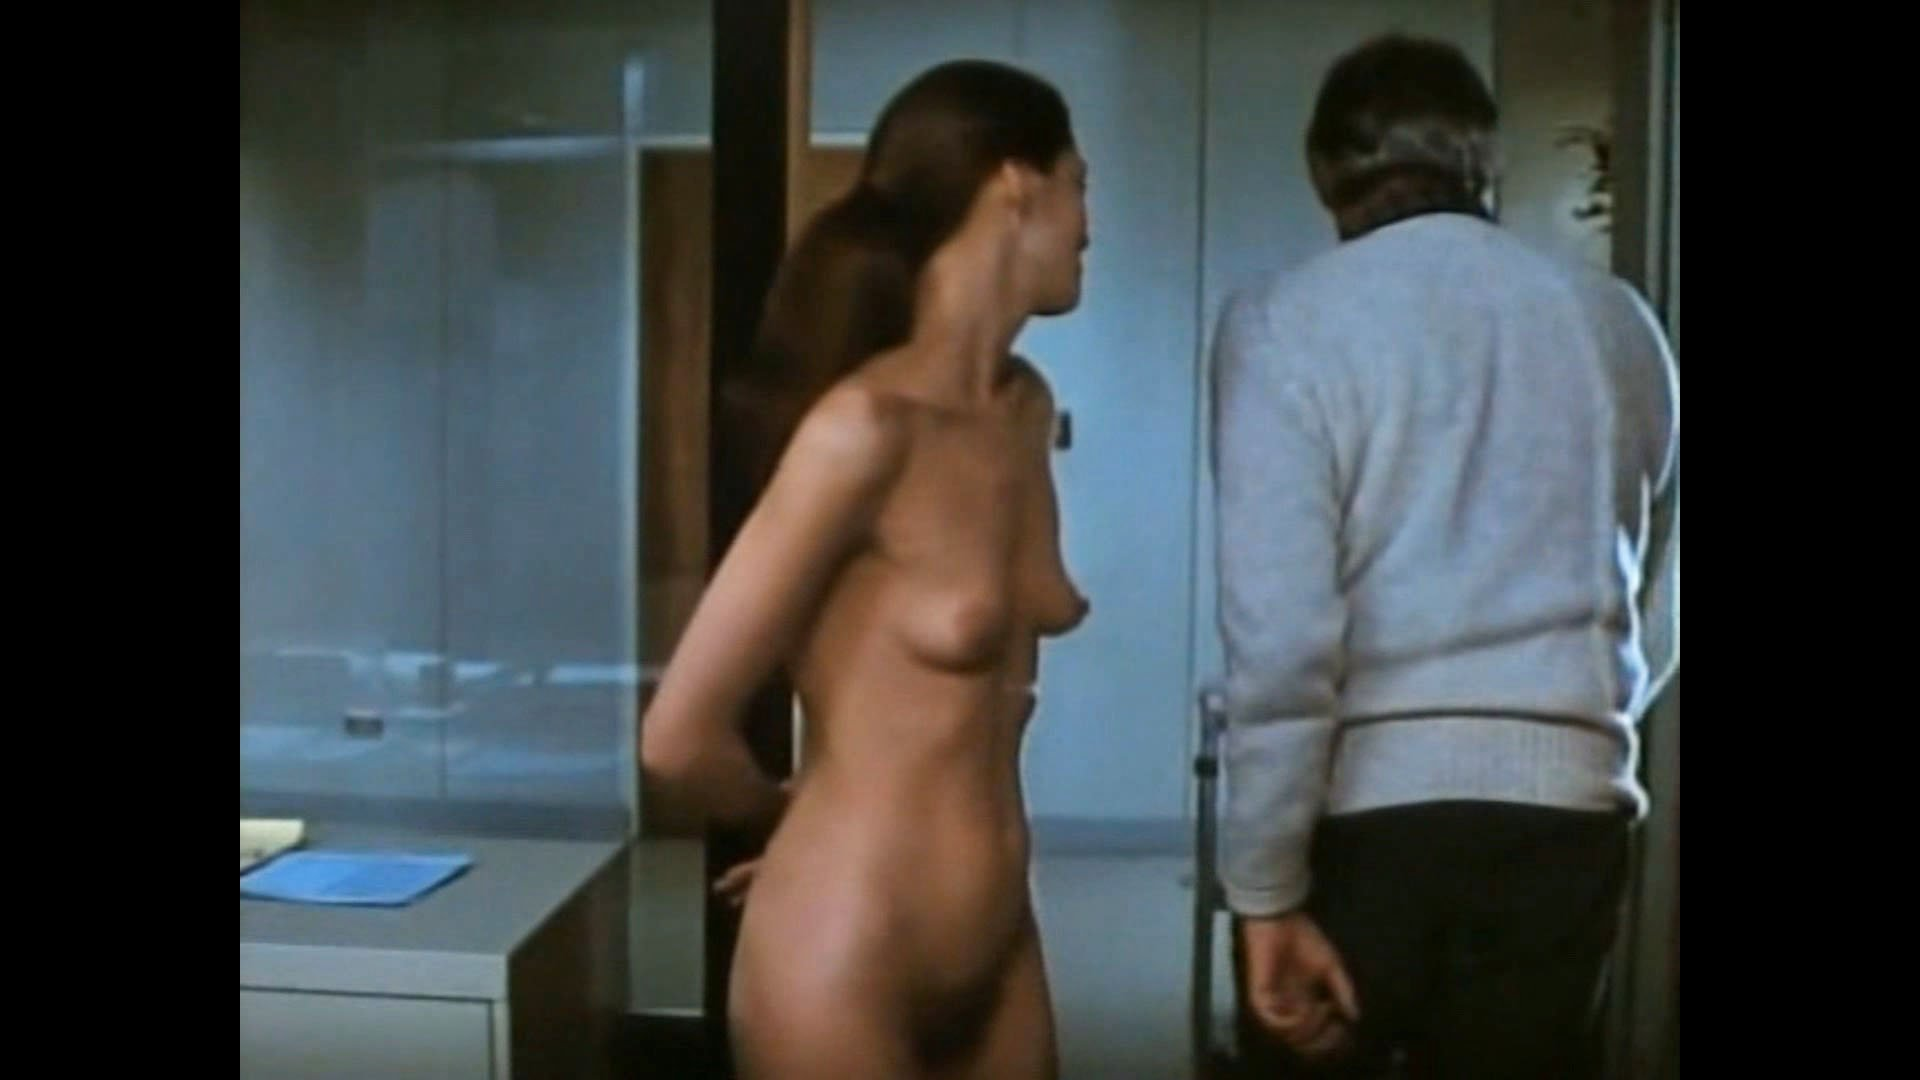 Tabitha Herrington nude - Mr. Patman (1980)